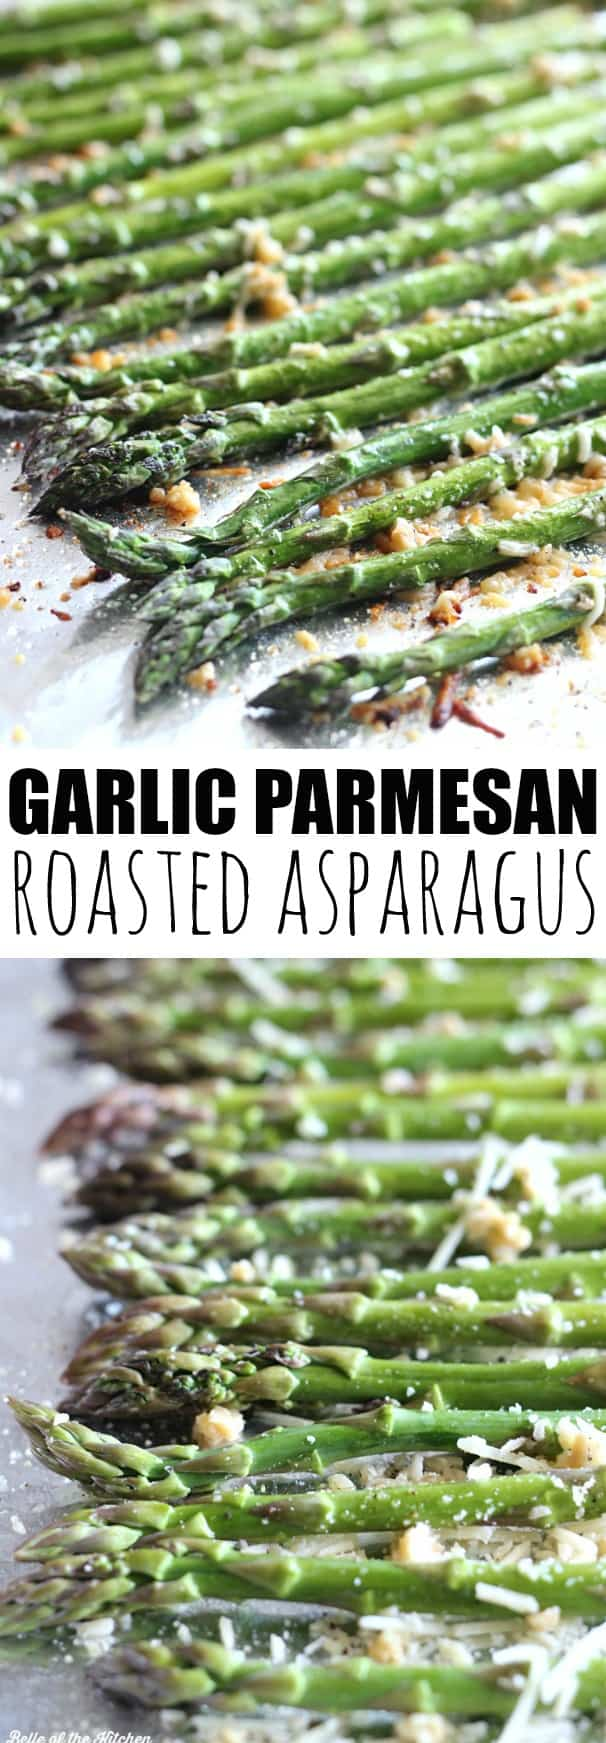 Garlic parmesan roasted asparagus belle of the kitchen this is my favorite way to eat asparagus roasted with garlic and topped with parmesan ccuart Gallery